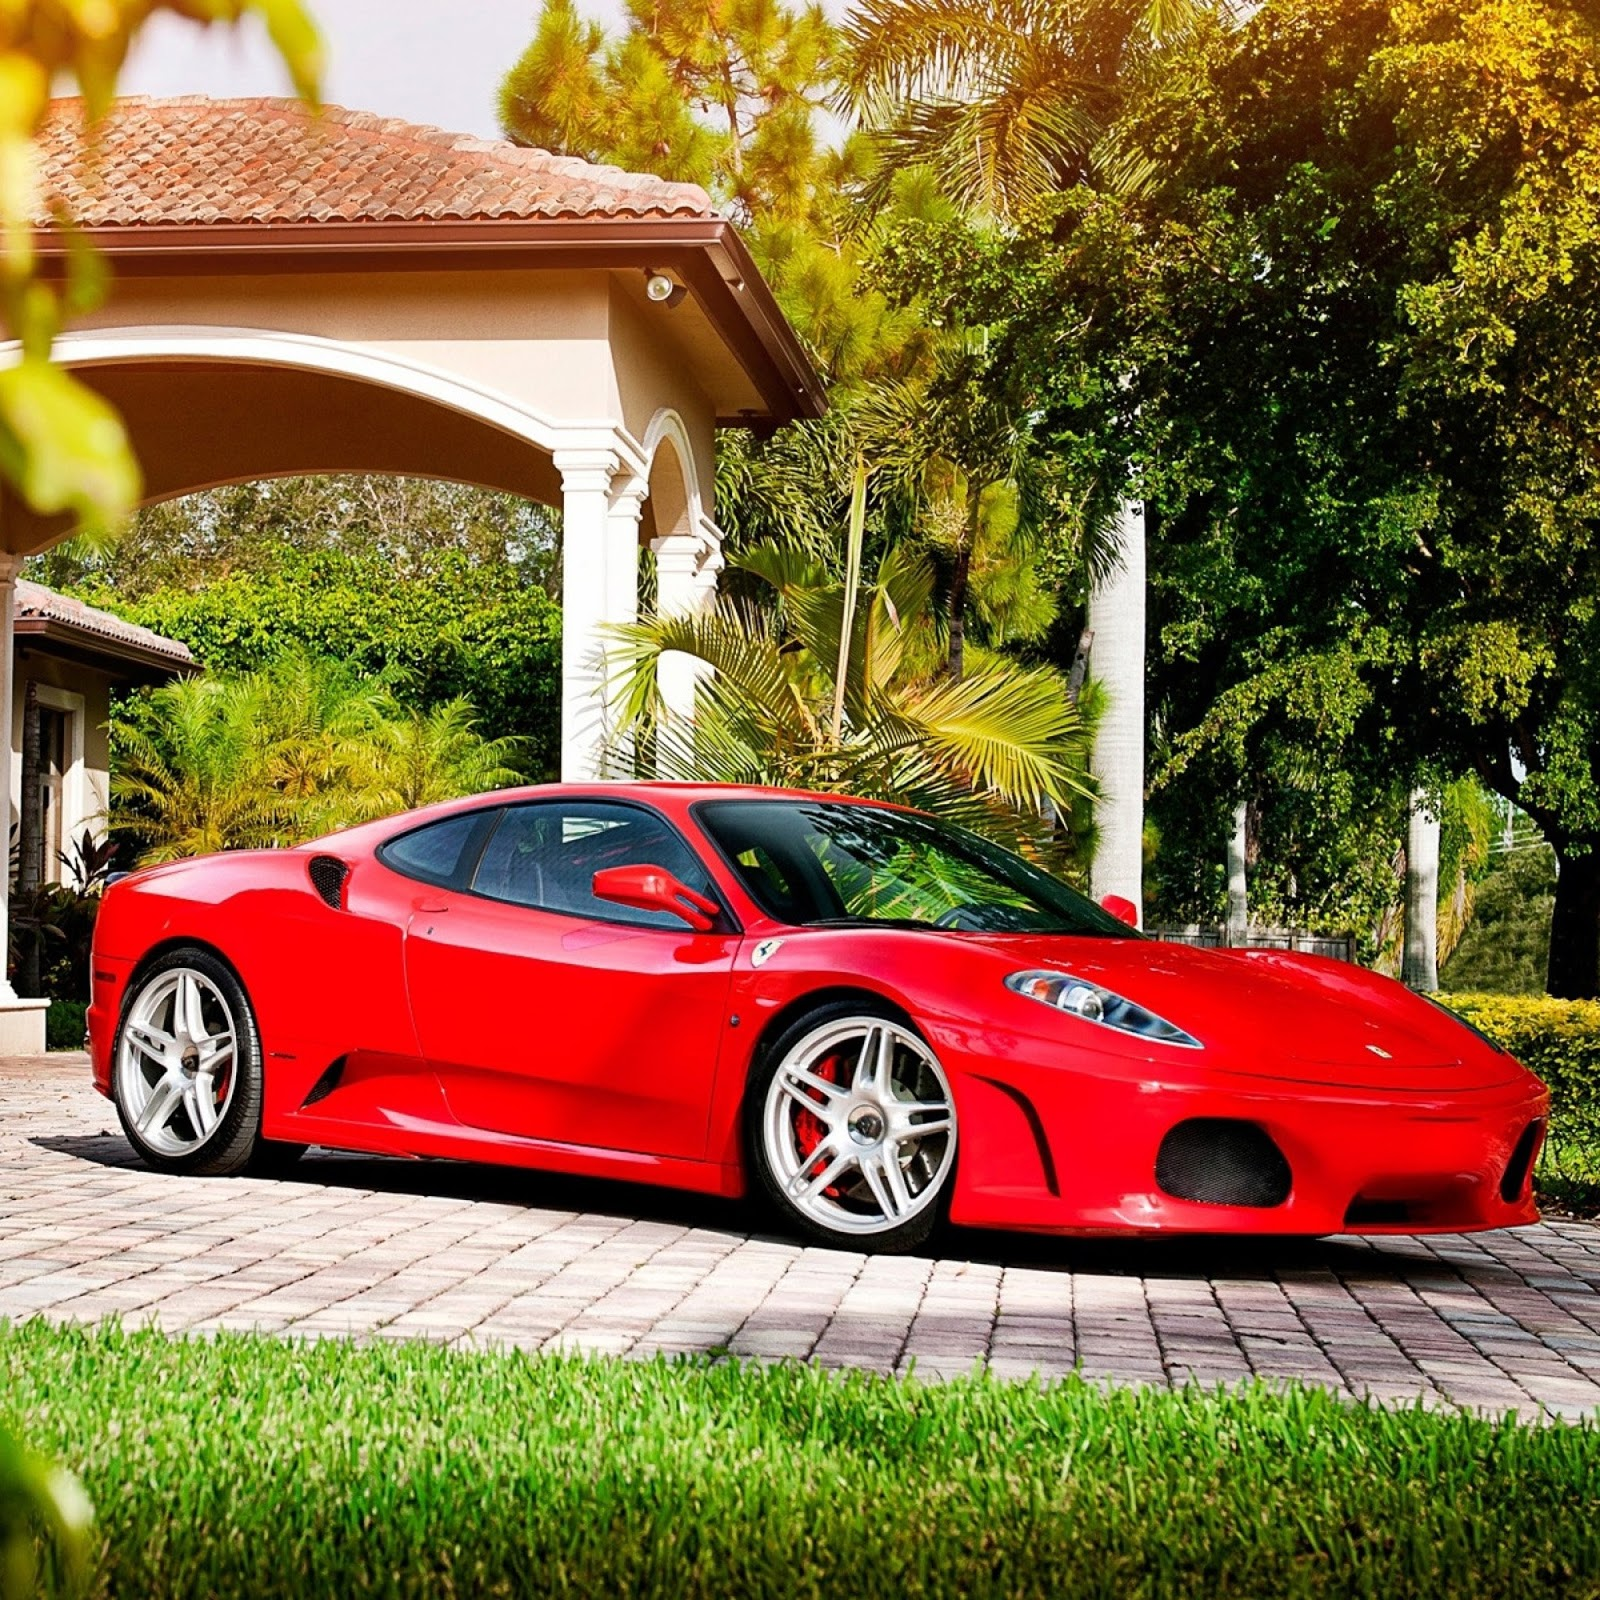 19 Best Images About Ferrari F430 On Pinterest: High Definition Wallpaper Club: ADV1 Wheels Ferrari F430